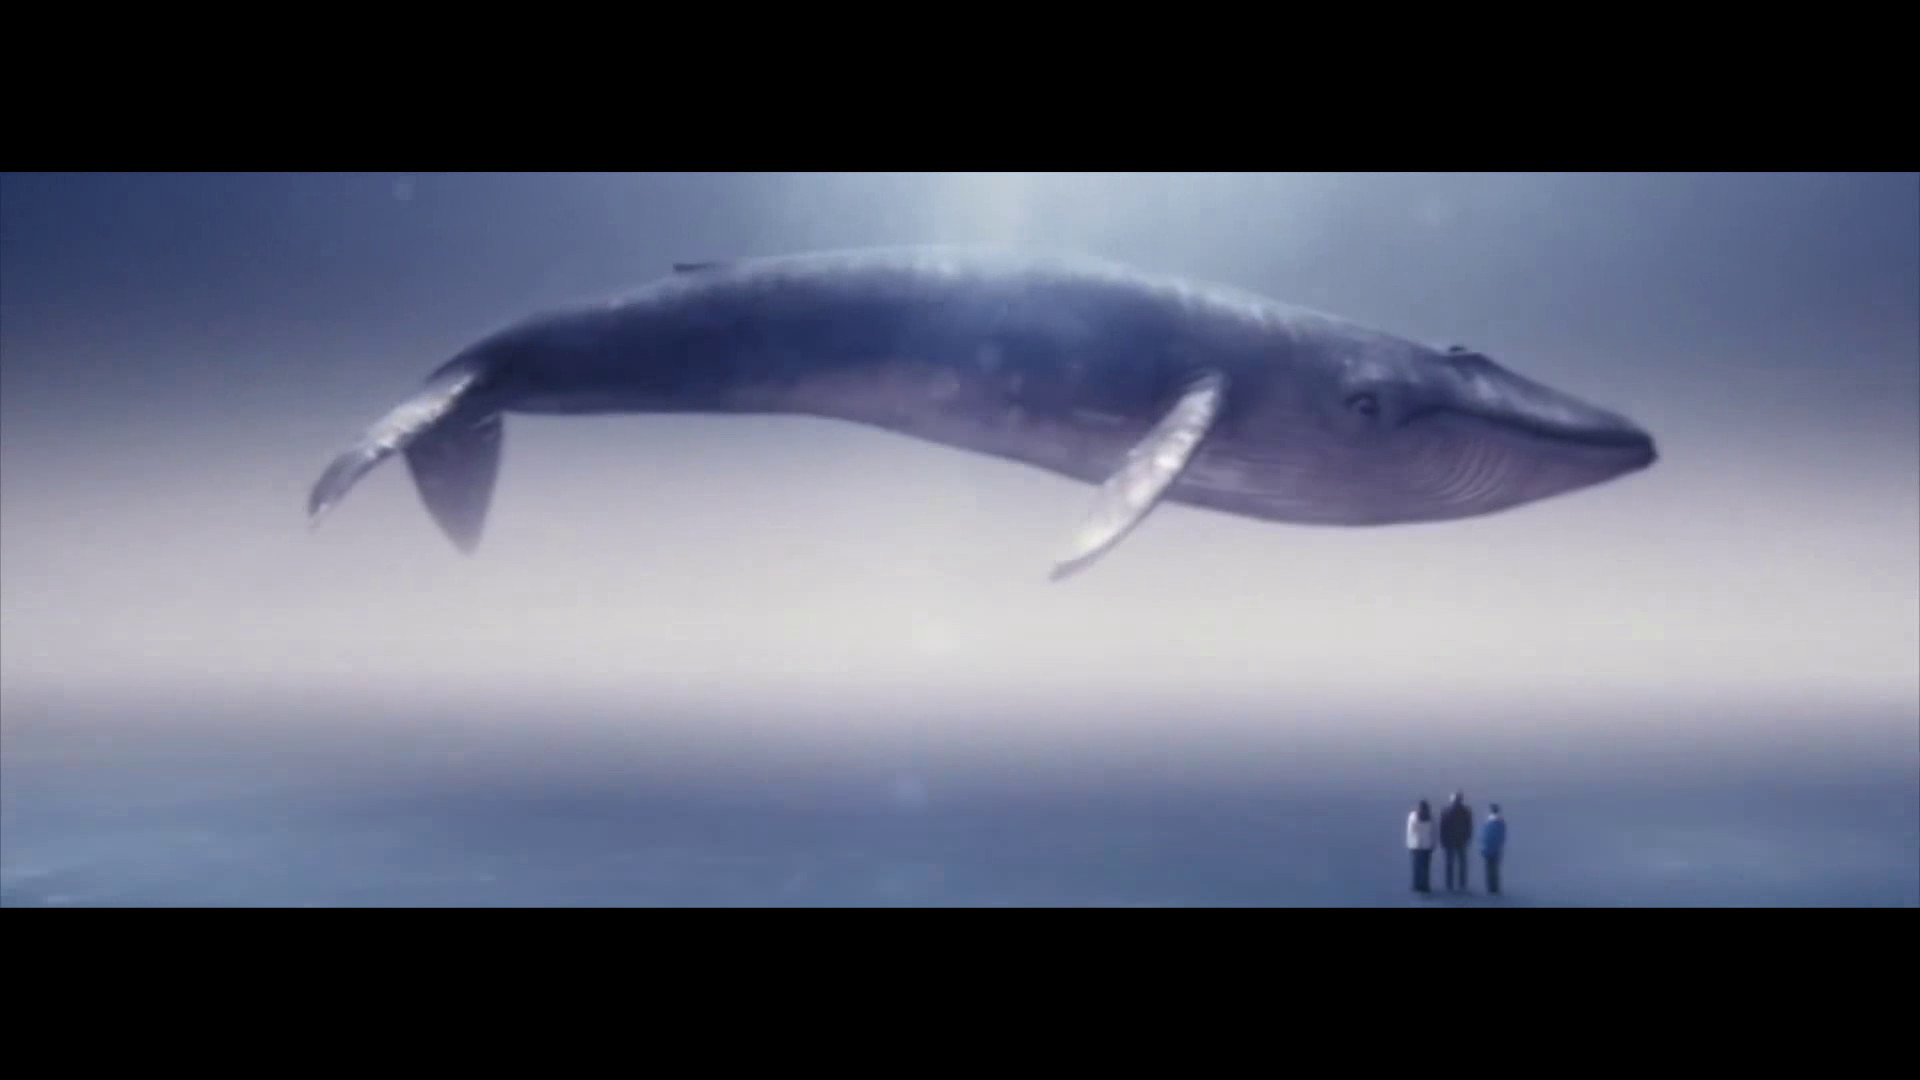 Frame for the open university advert a world of inspired learning showing the Blue whale